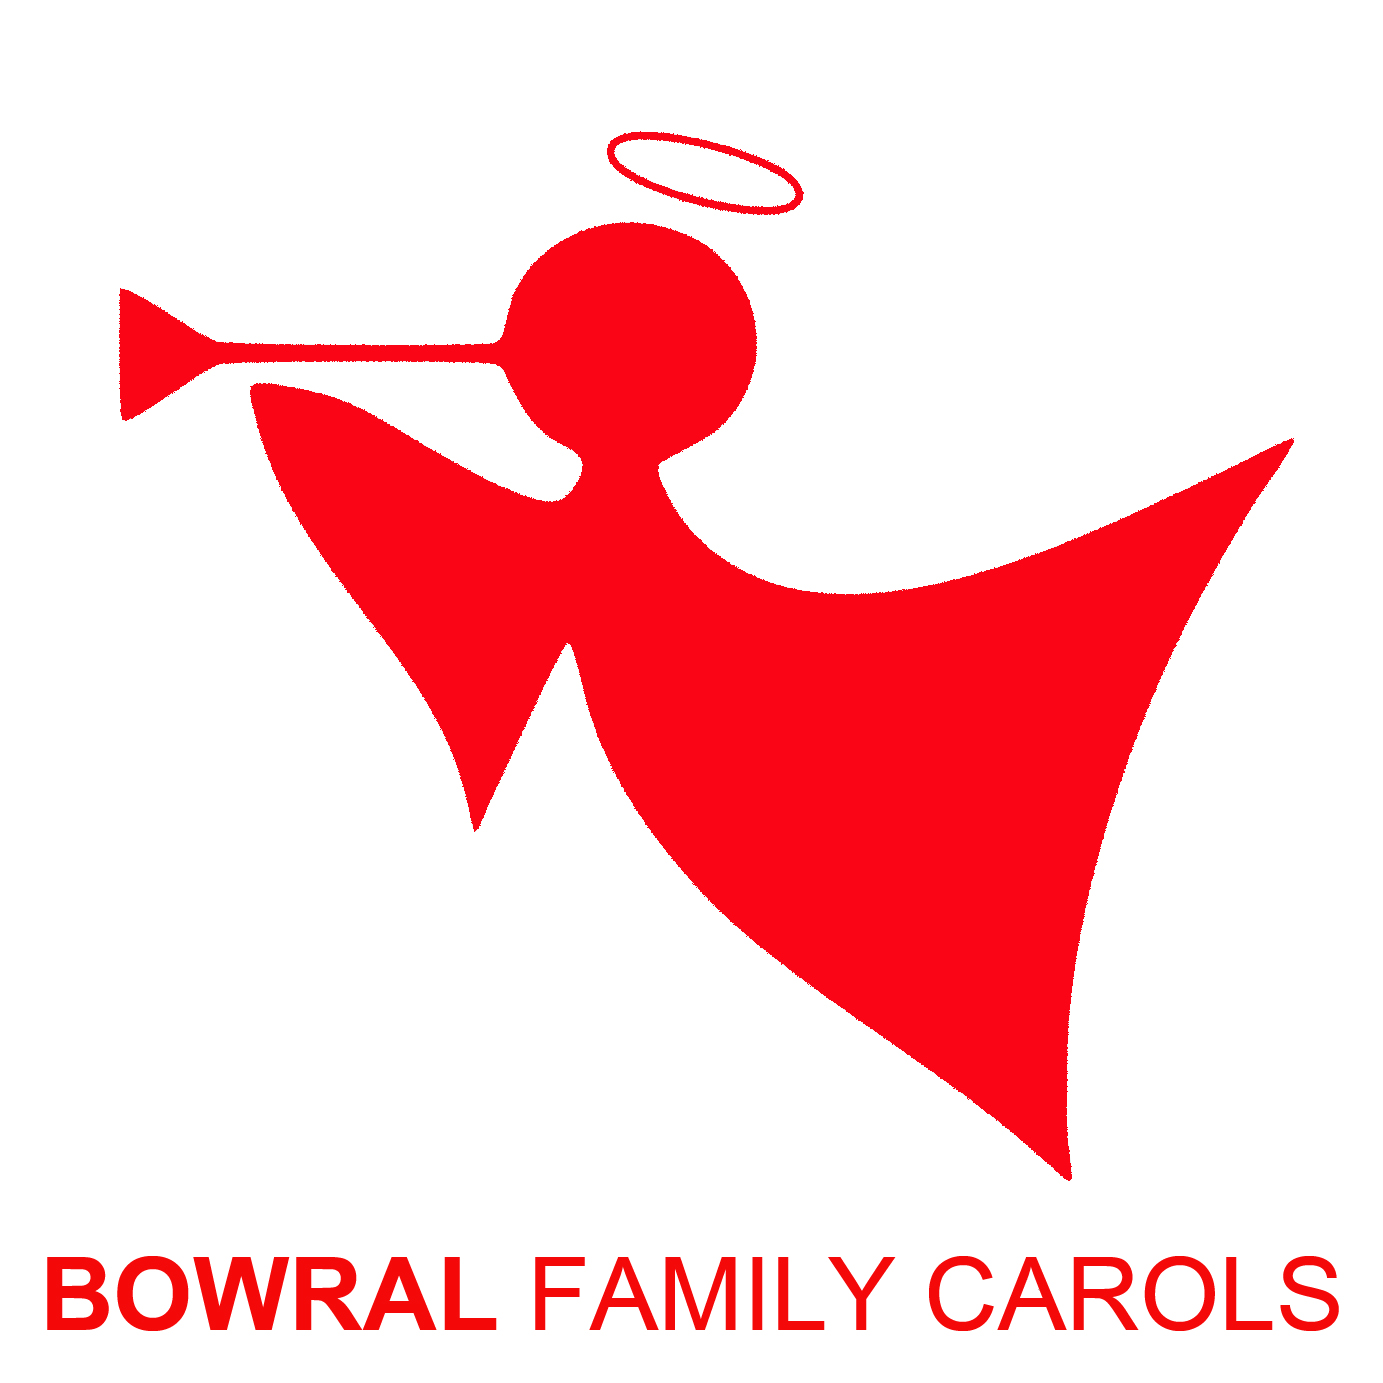 Bowral family carols courtesy. Caroling clipart performance